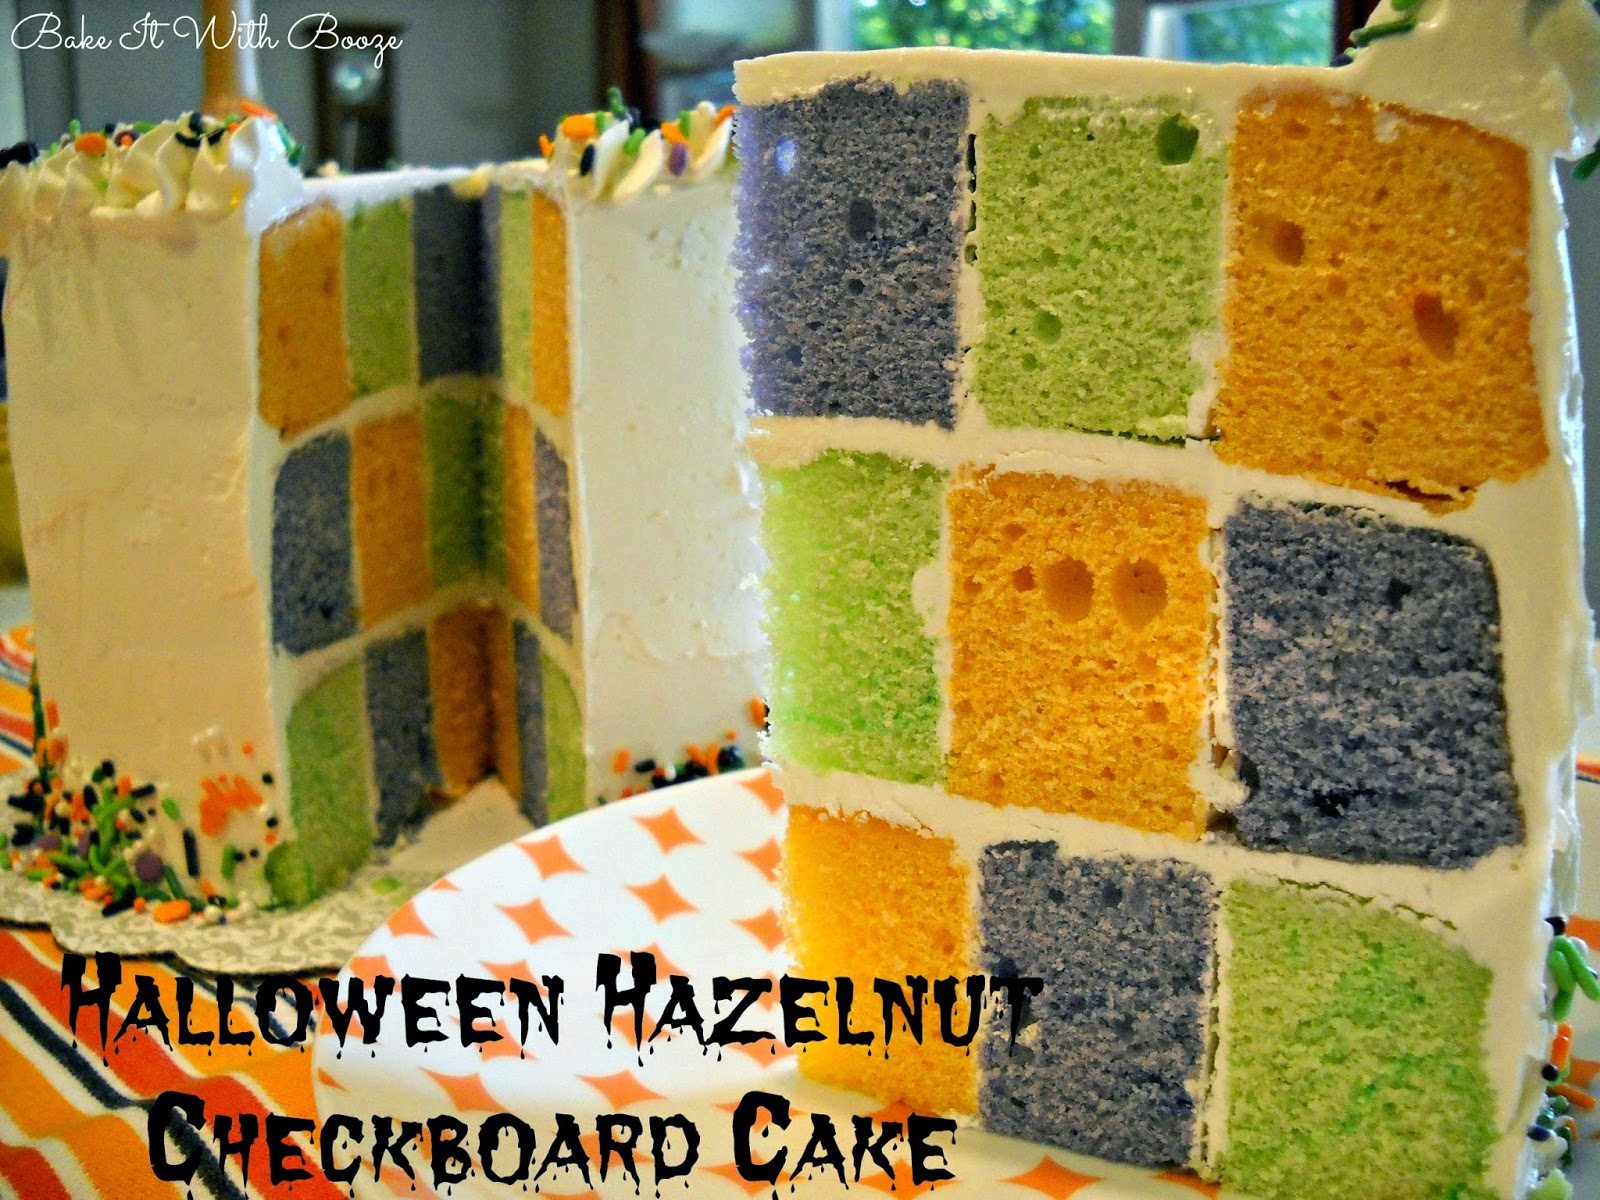 Halloween Hazelnut Checkerboard Cake